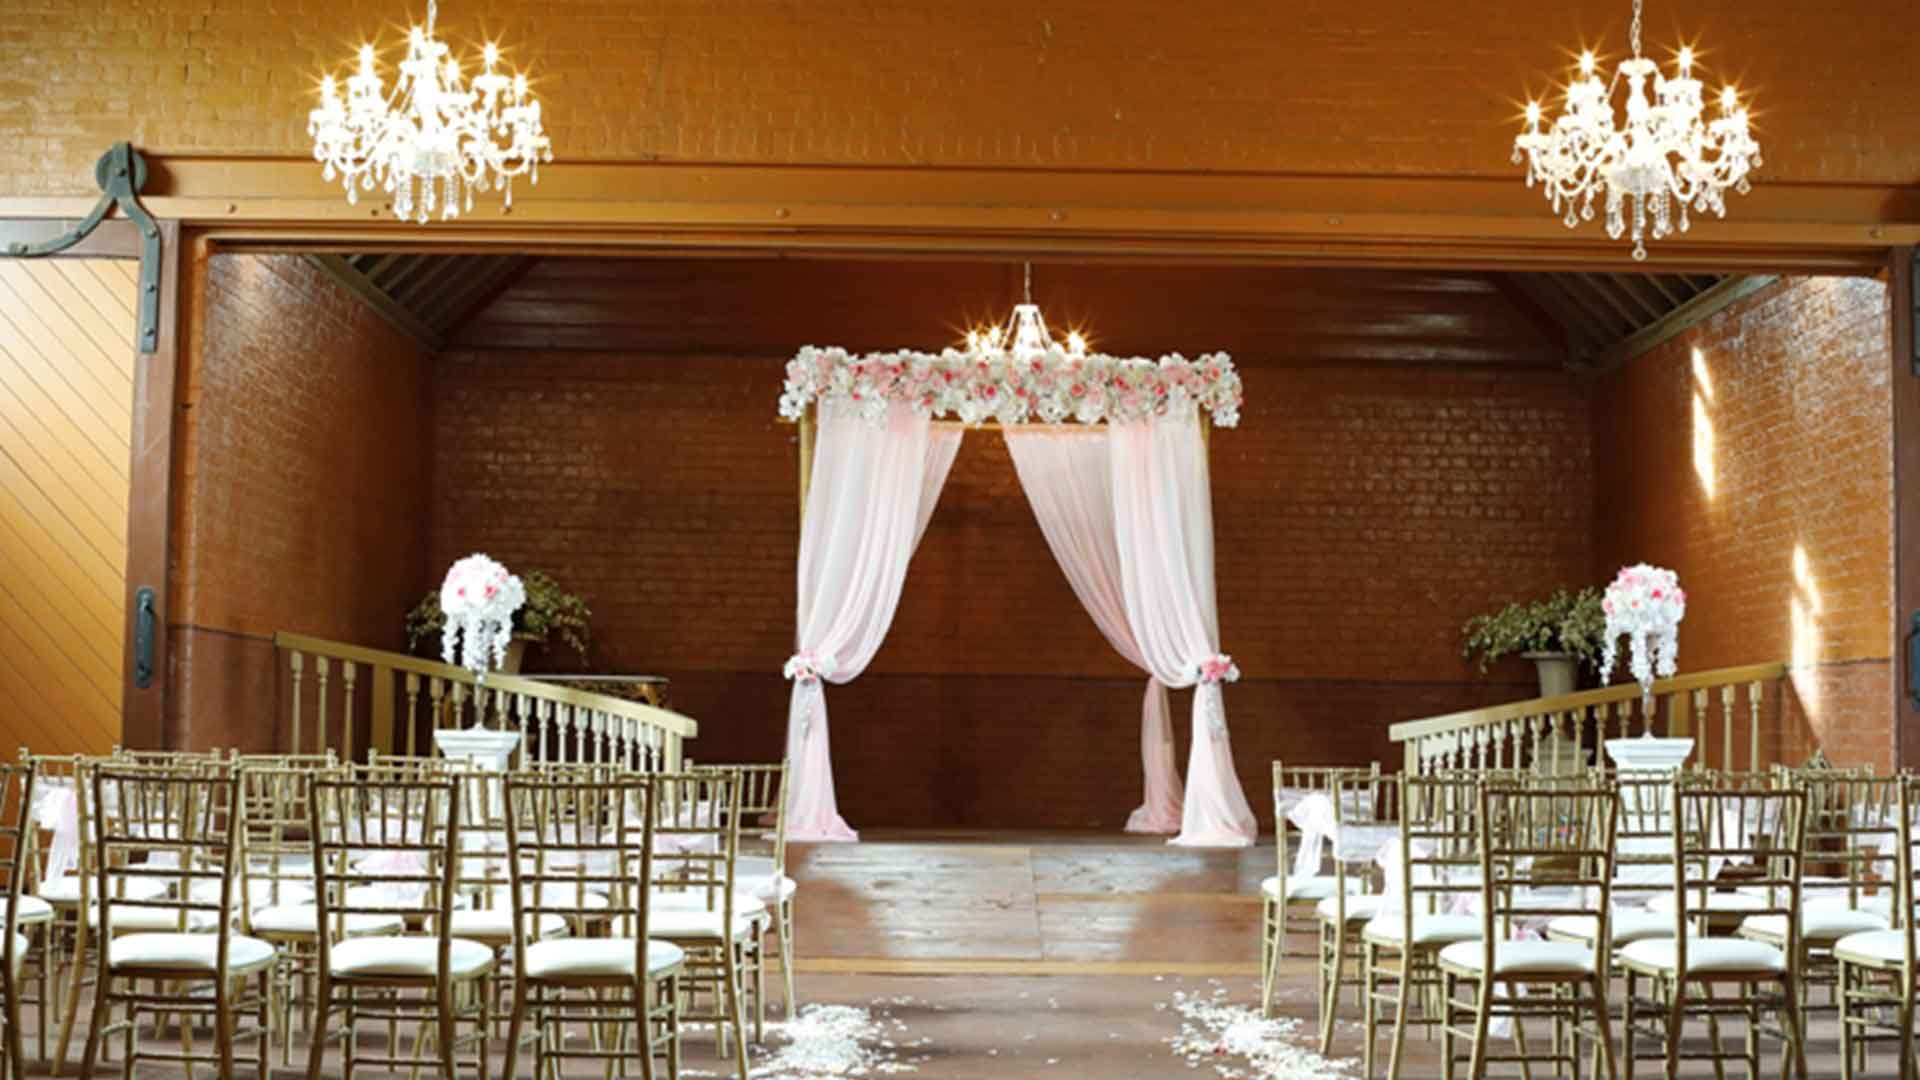 Aisle Wedding Decoration Hire